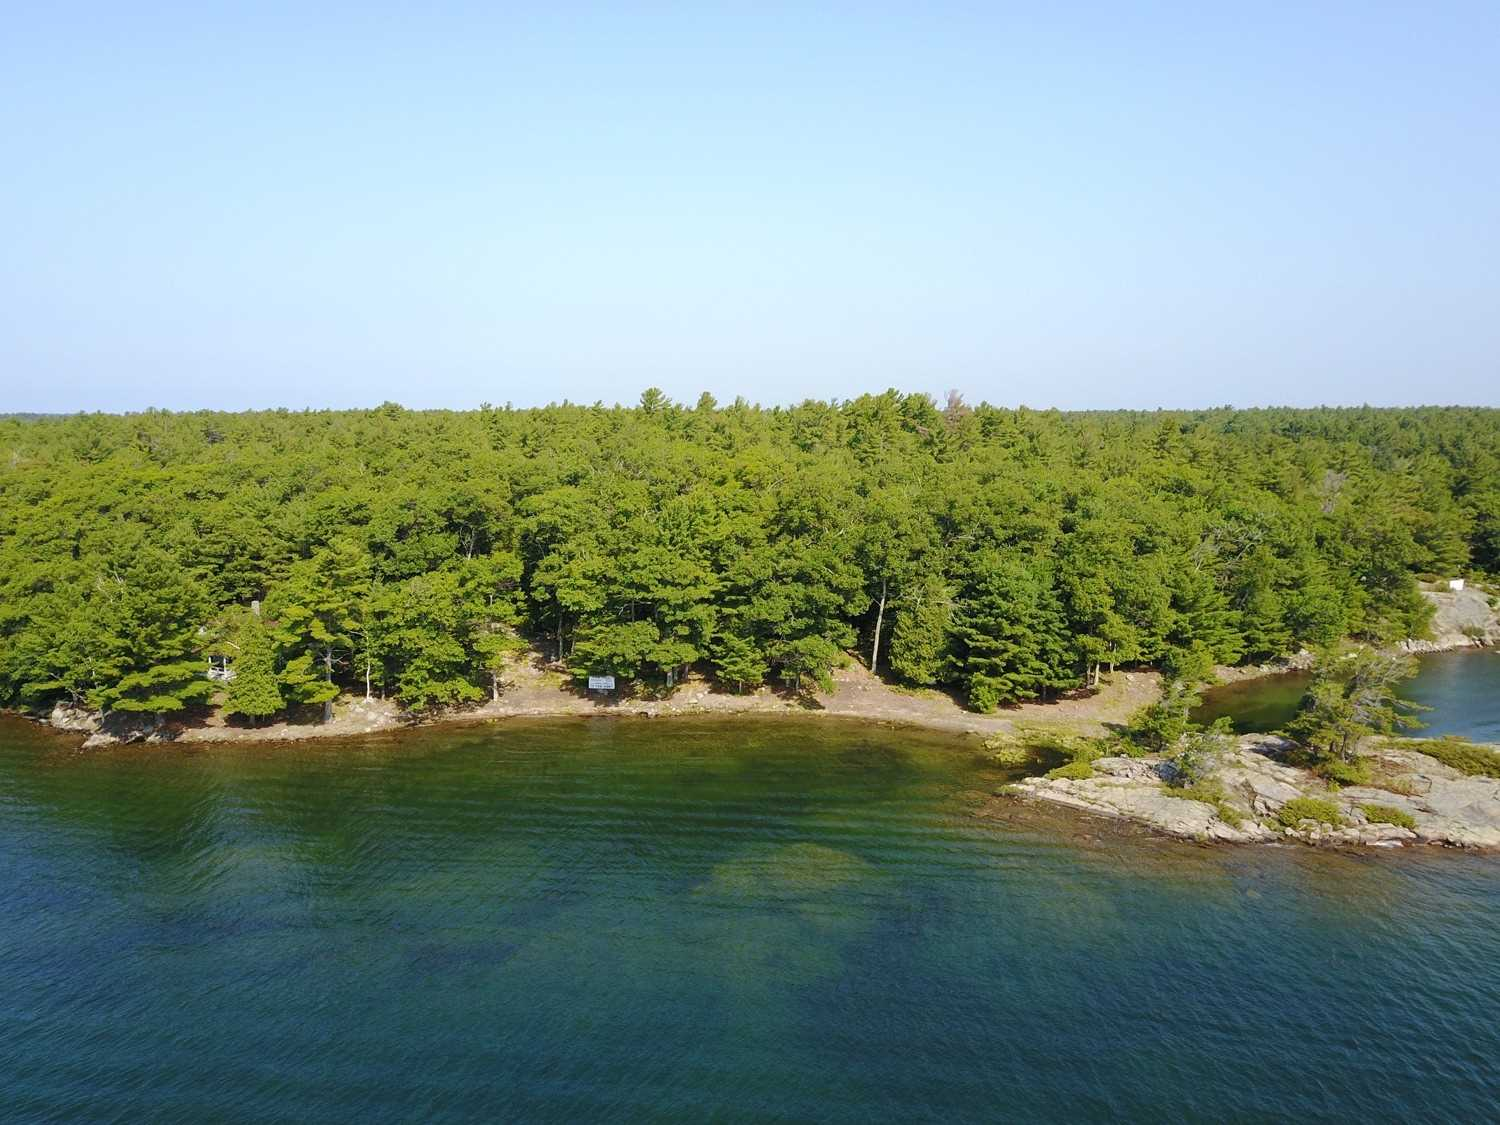 Vacant Island Lot 2.89 Ac, 455' Shoreline Water Frontage, 600'+ Lot Depth Into Champlain Monument Island. 1Km Paddle To The Famous Ojibway Club, In The Center Of The Island Community. 15 Min Boat Ride From Marinas. Short Walk Through The Woods To The Historic Champlain Monument. Views For Miles Onto Islands In The Exotic Georgian Bay Fresh Water Granite & Treed Pointe Au Baril Community. Hydro Next Door Or Solar Option.